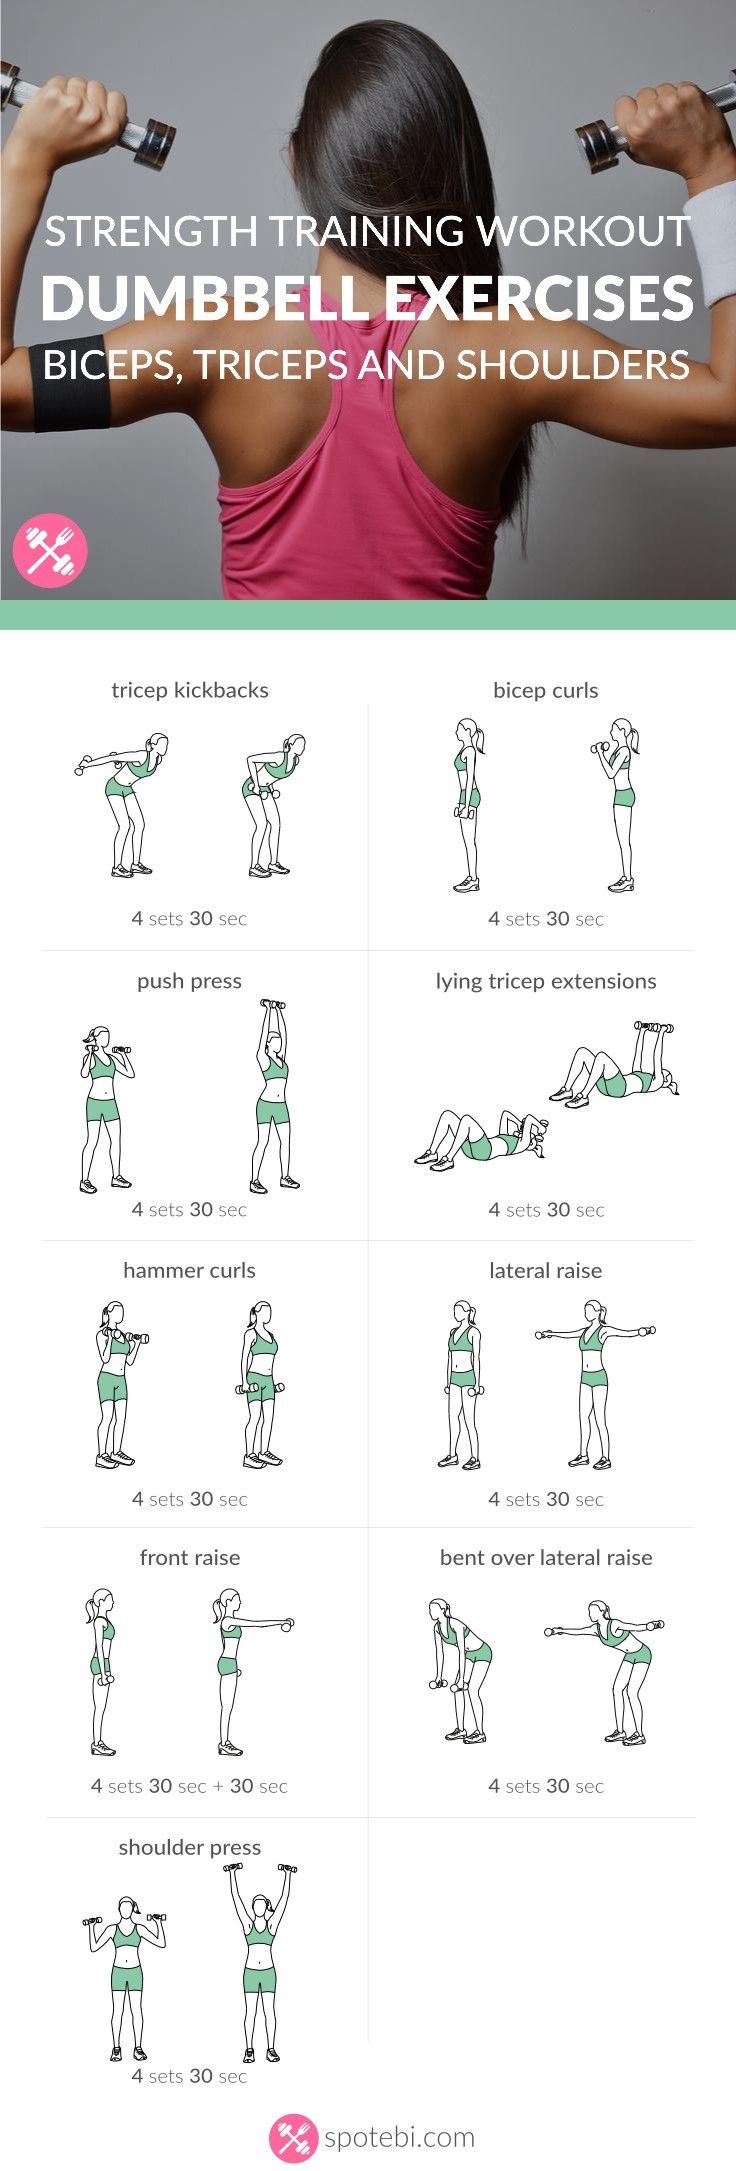 Get rid of arm fat and tone sleek muscles with the help of these dumbbell exercises. Sculpt, tone and firm your biceps, triceps and shoulders in no time! http://www.spotebi.com/workout-routines/upper-body-dumbbell-exercises-biceps-triceps-shoulders-workout/ #weightlossmotivation